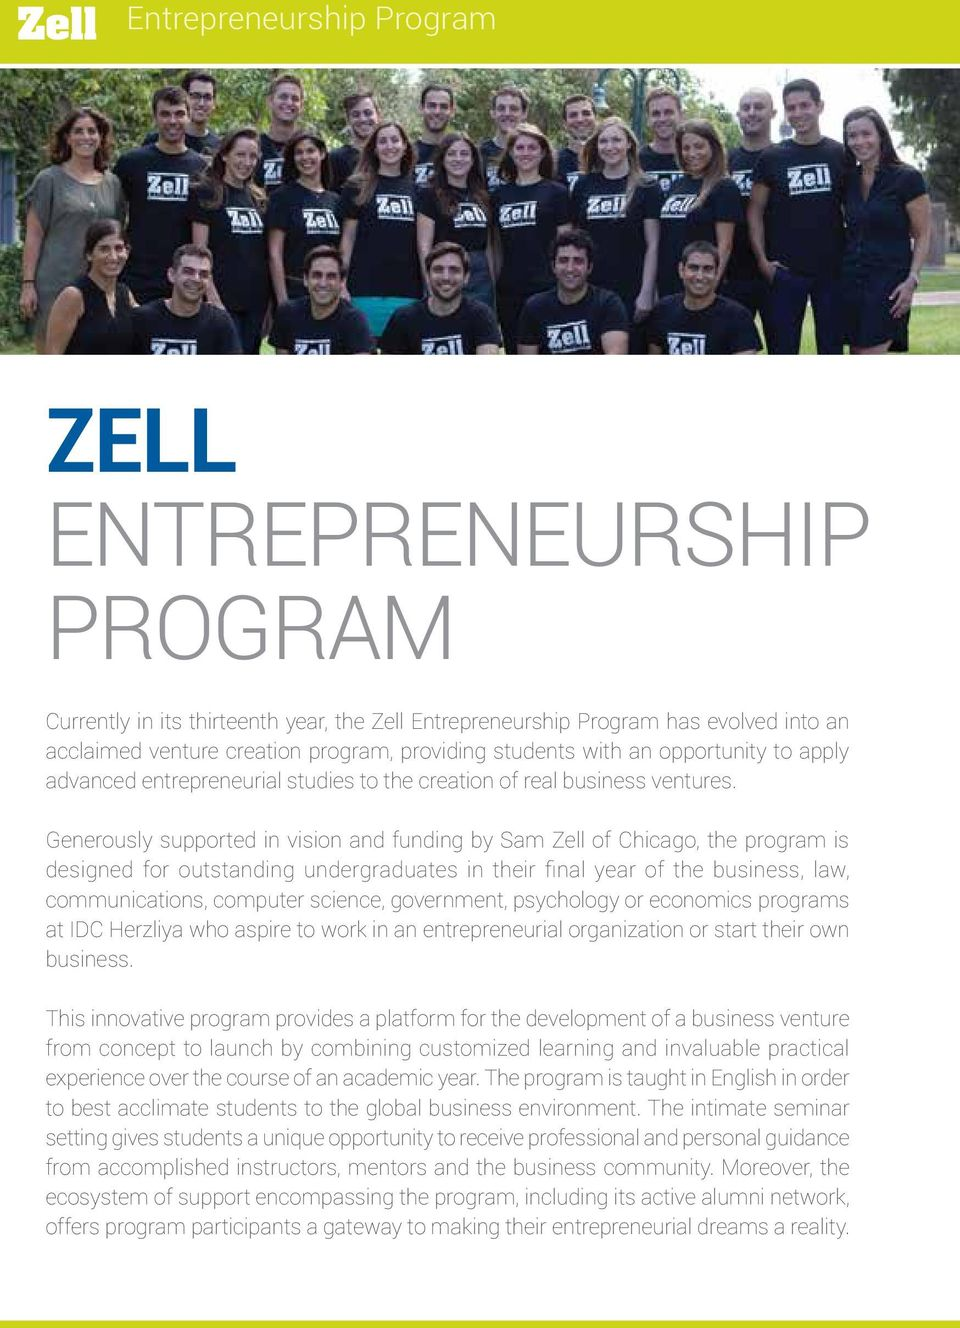 Generously supported in vision and funding by Sam Zell of Chicago, the program is designed for outstanding undergraduates in their final year of the business, law, communications, computer science,